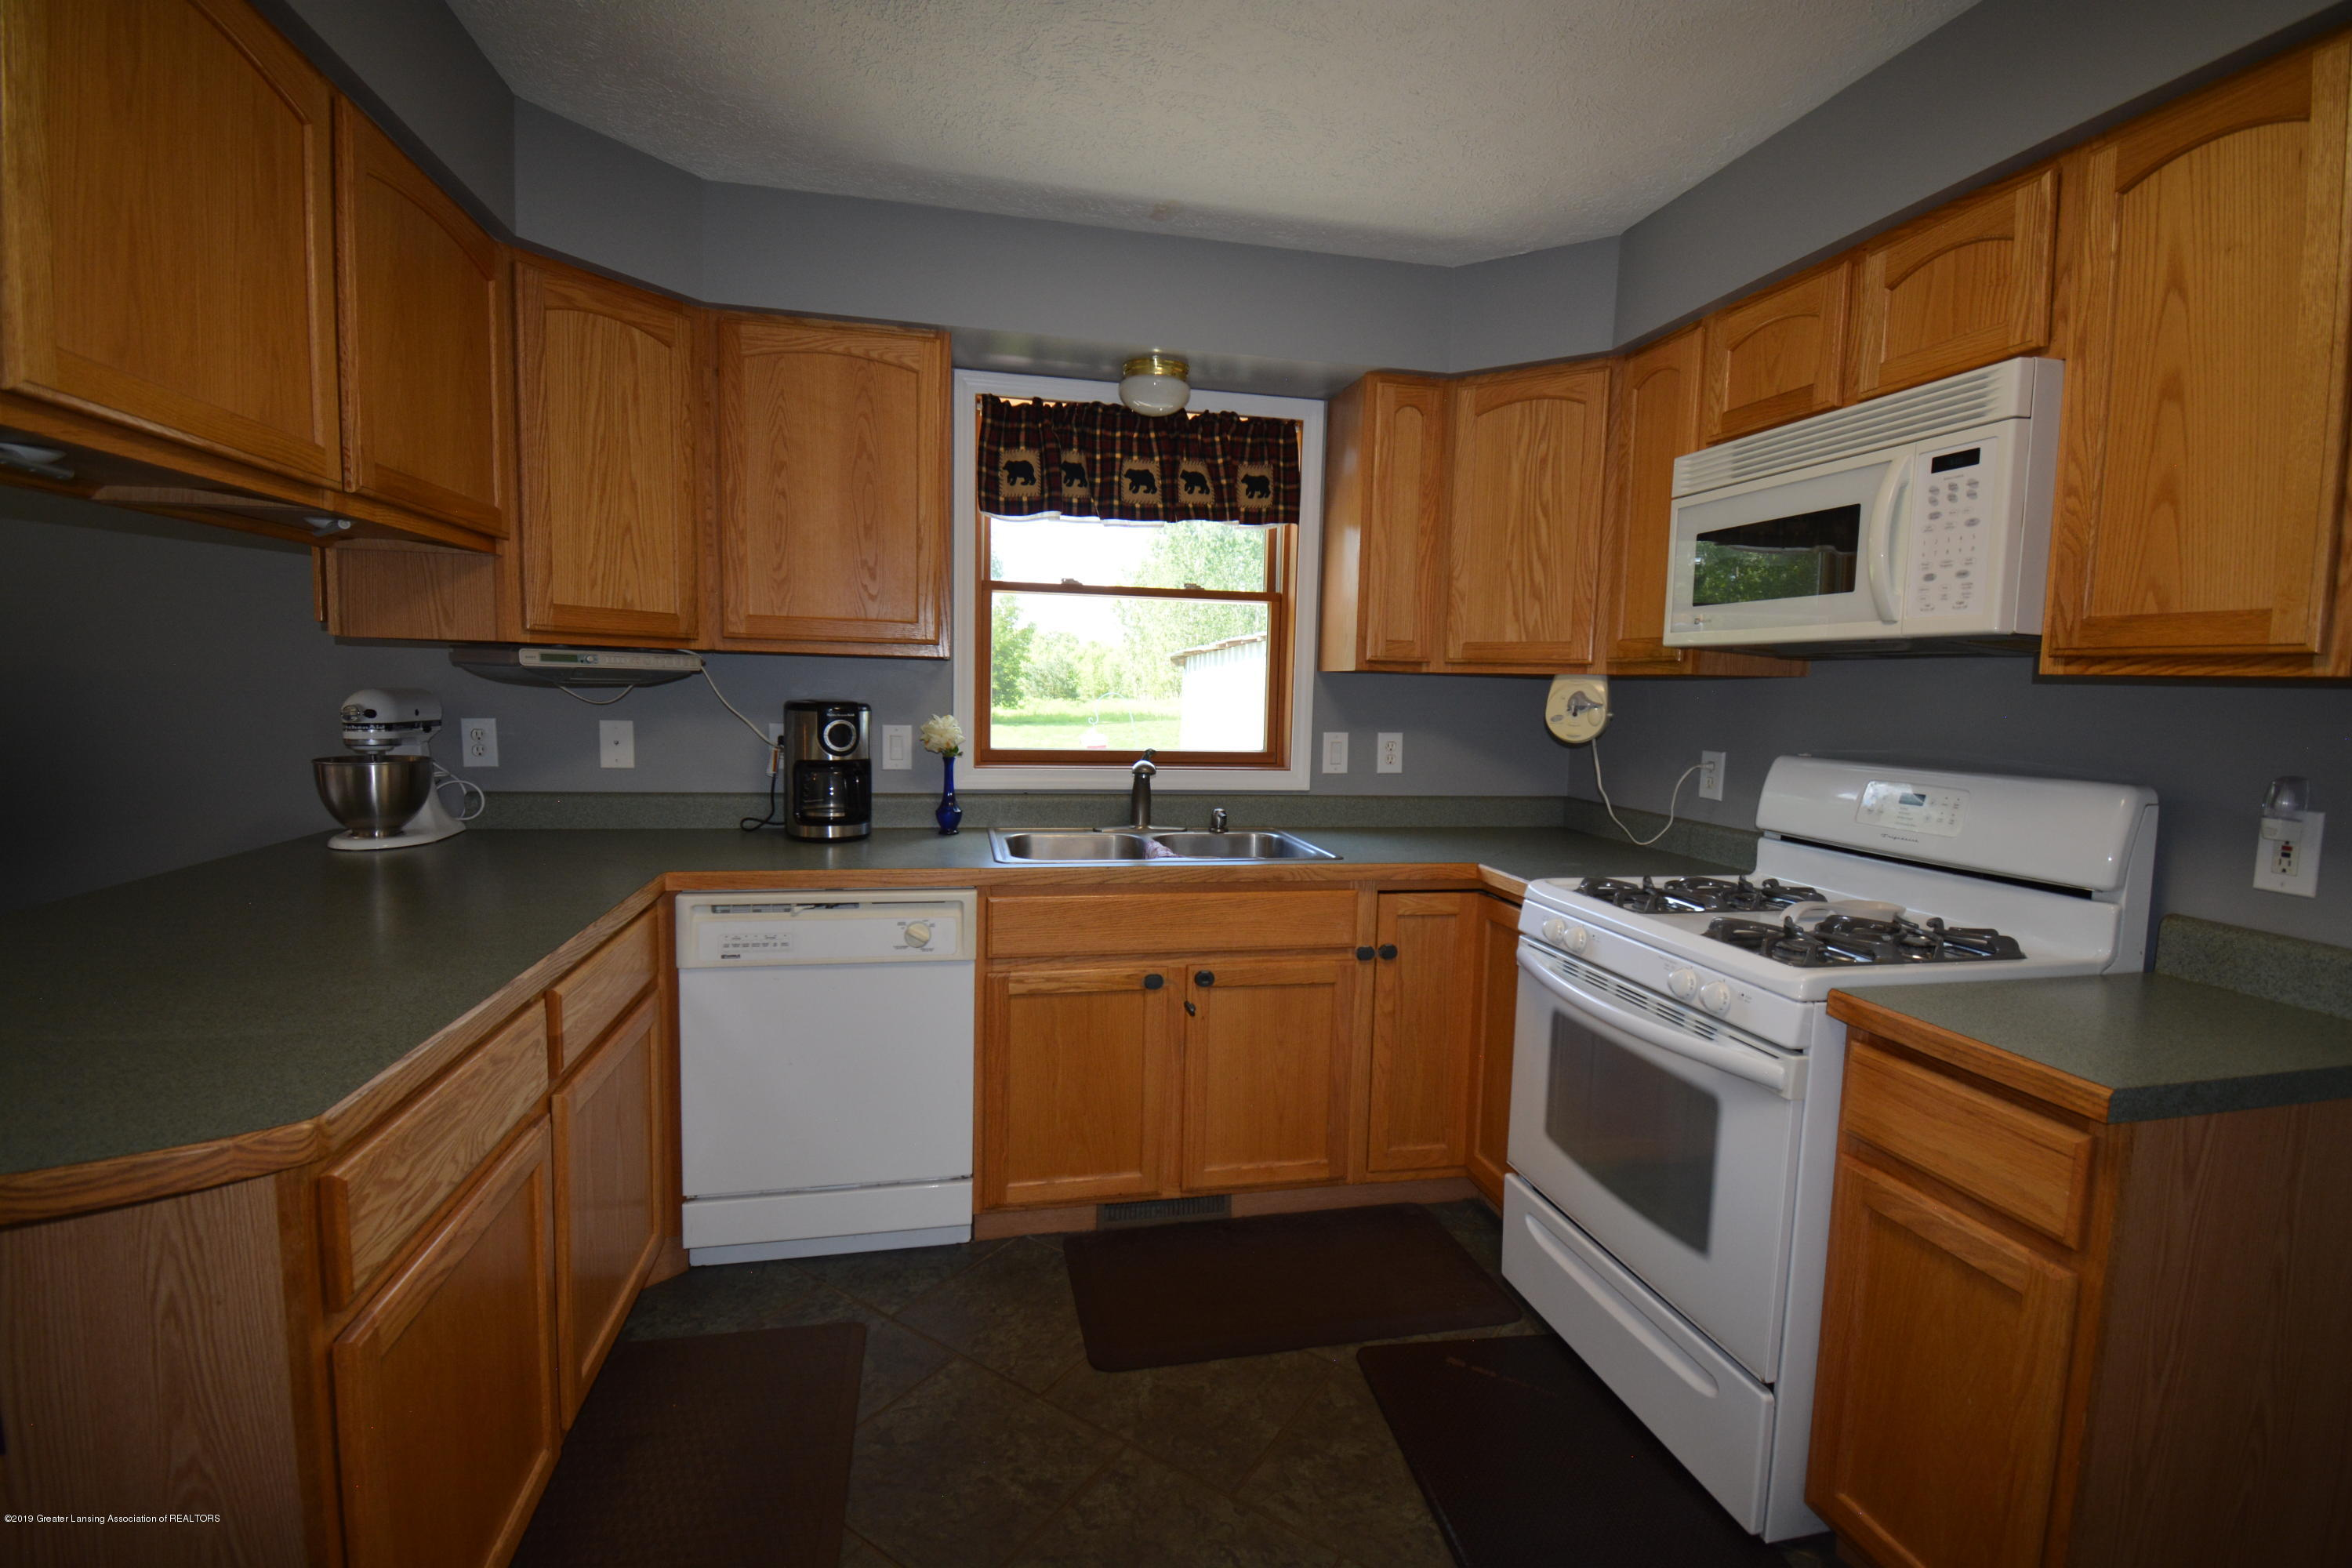 7459 Rossman Hwy - Kitchen View 3 - 14